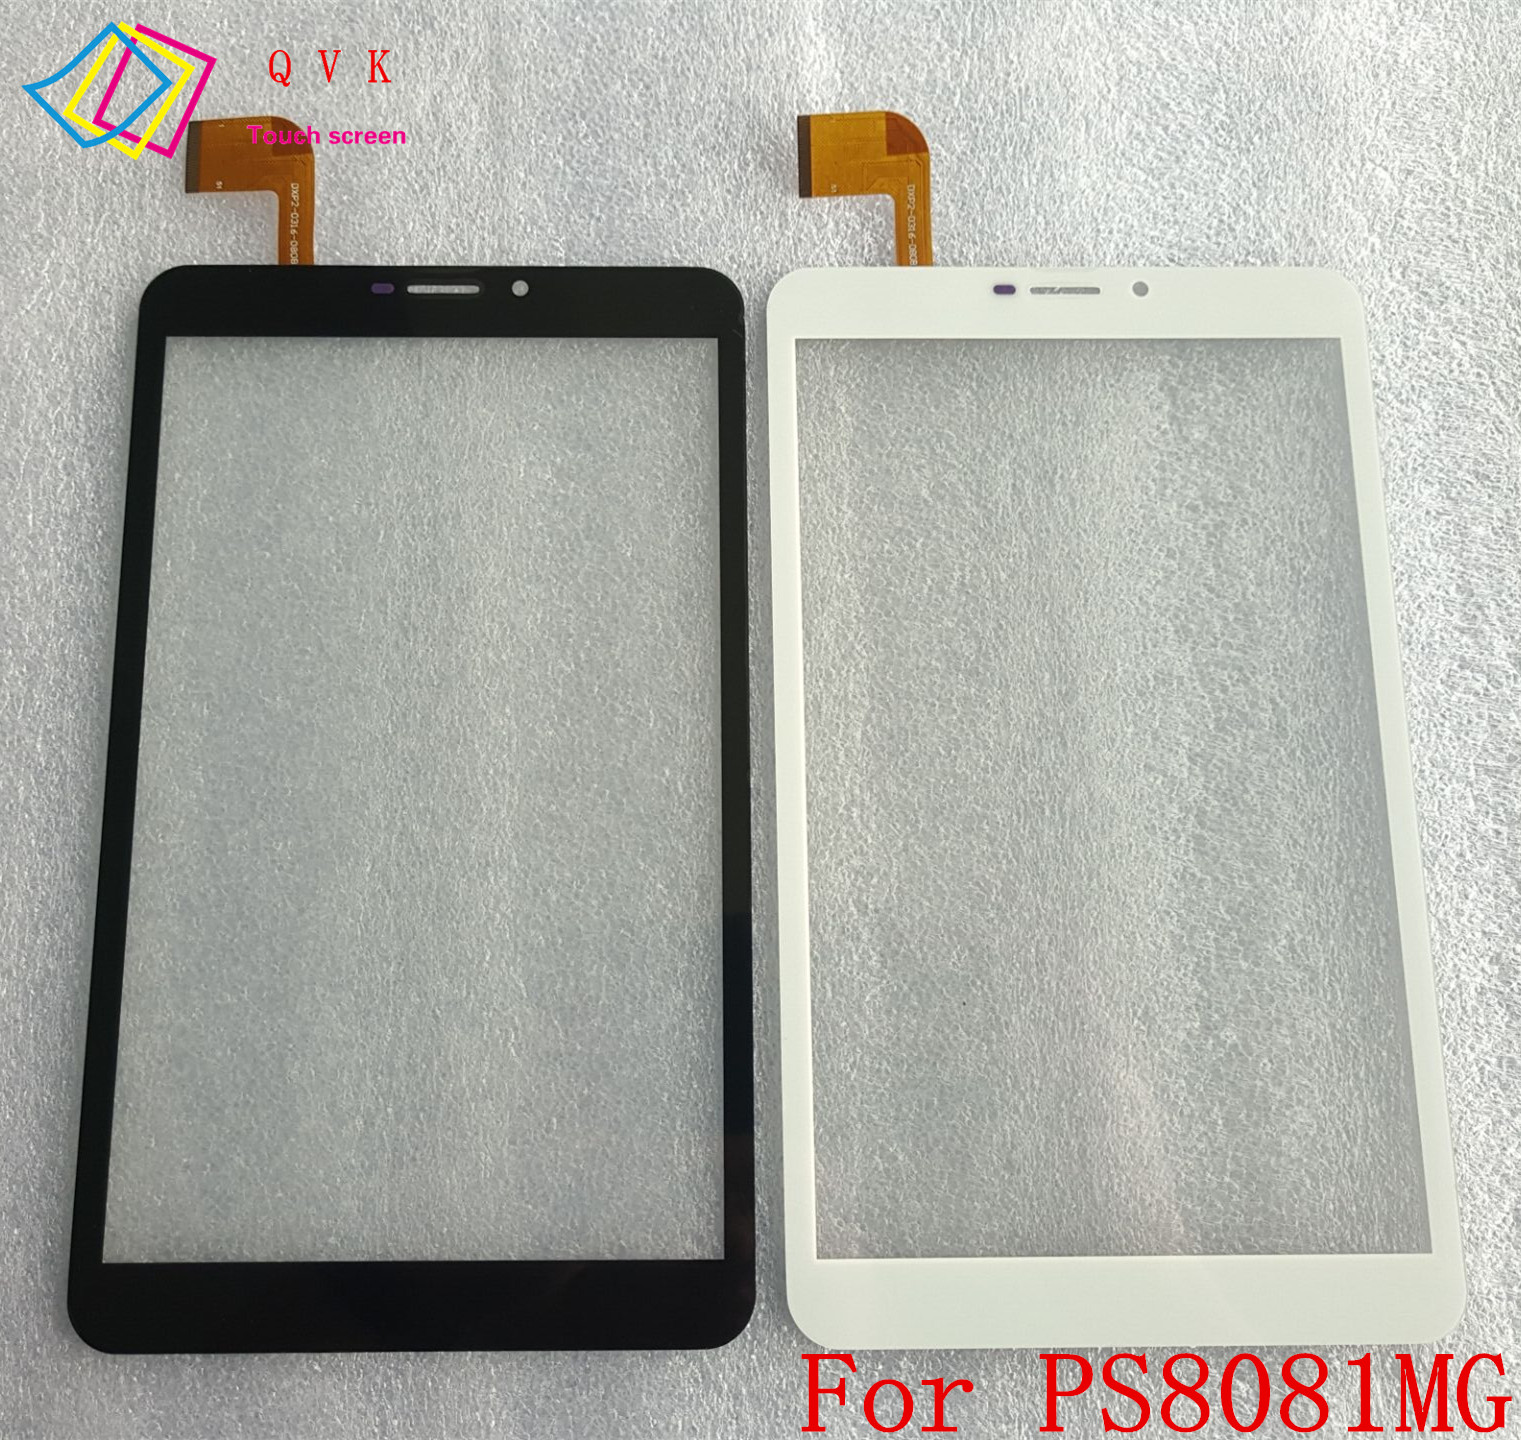 Blcak White 8 inch Touch Screen For DIGMA Plane E8.1 3G PS8081MG Tablet Touch Panel digitizer glass Sensor Replacement new touch screen for 8 digma plane e8 1 3g ps8081mg tablet touch panel digitizer glass sensor replacement free shipping